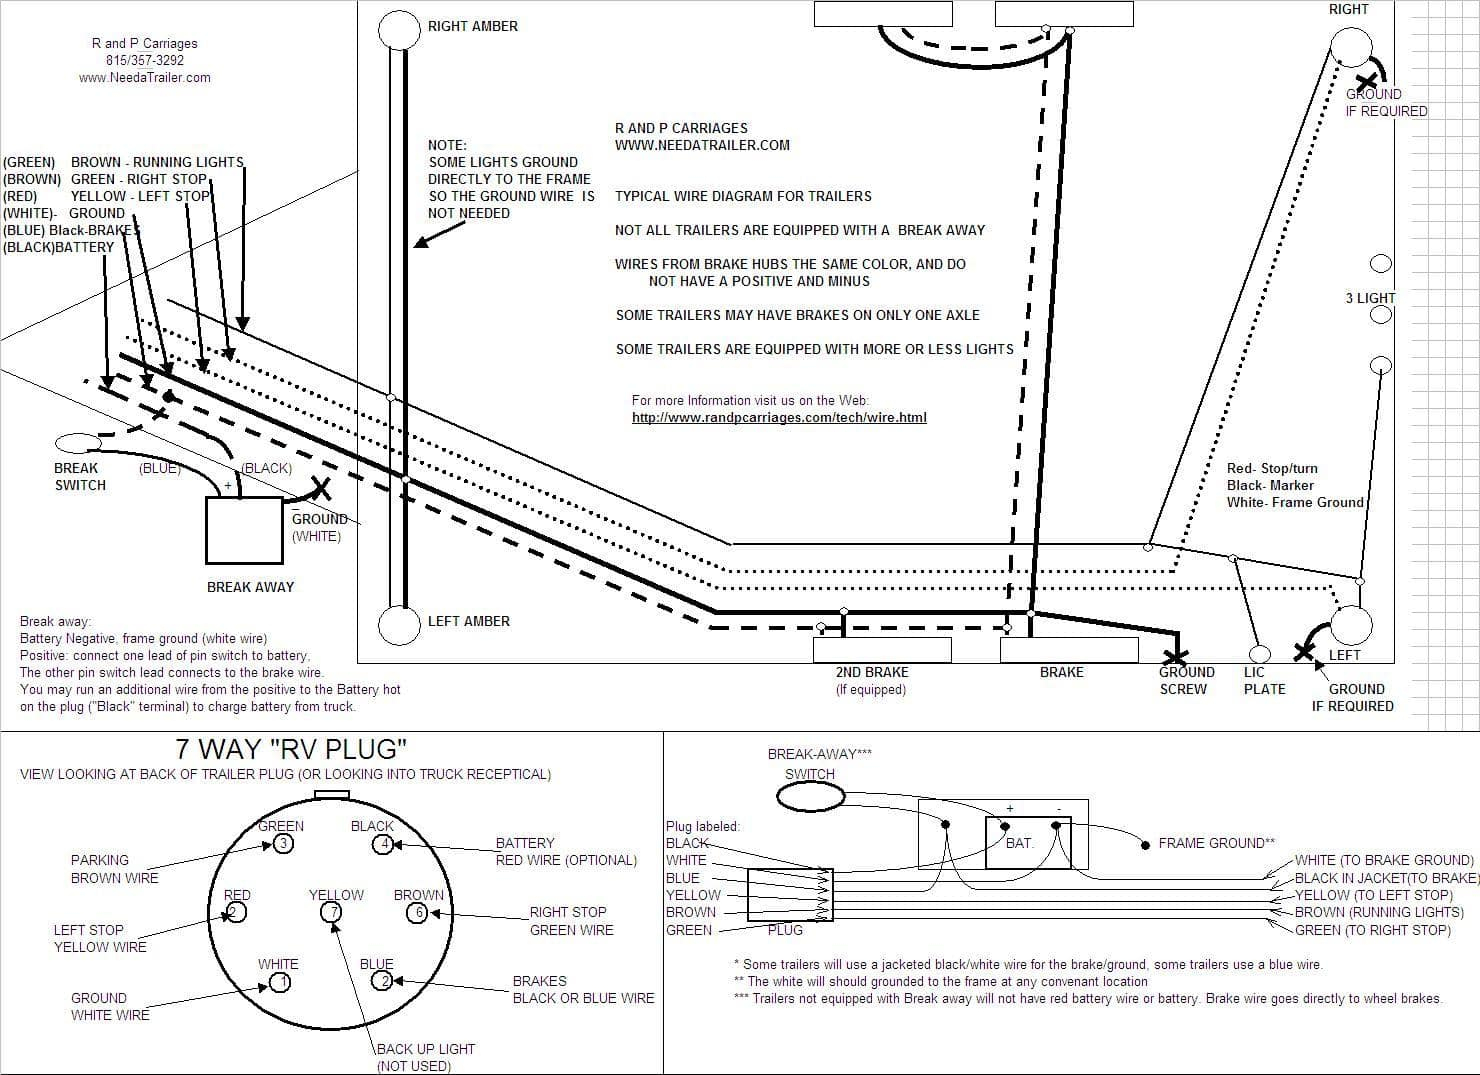 7 Way Plug Information | R And P Carriages | Cargo, Utility, Dump - Wiring Diagram Trailer With Brakes